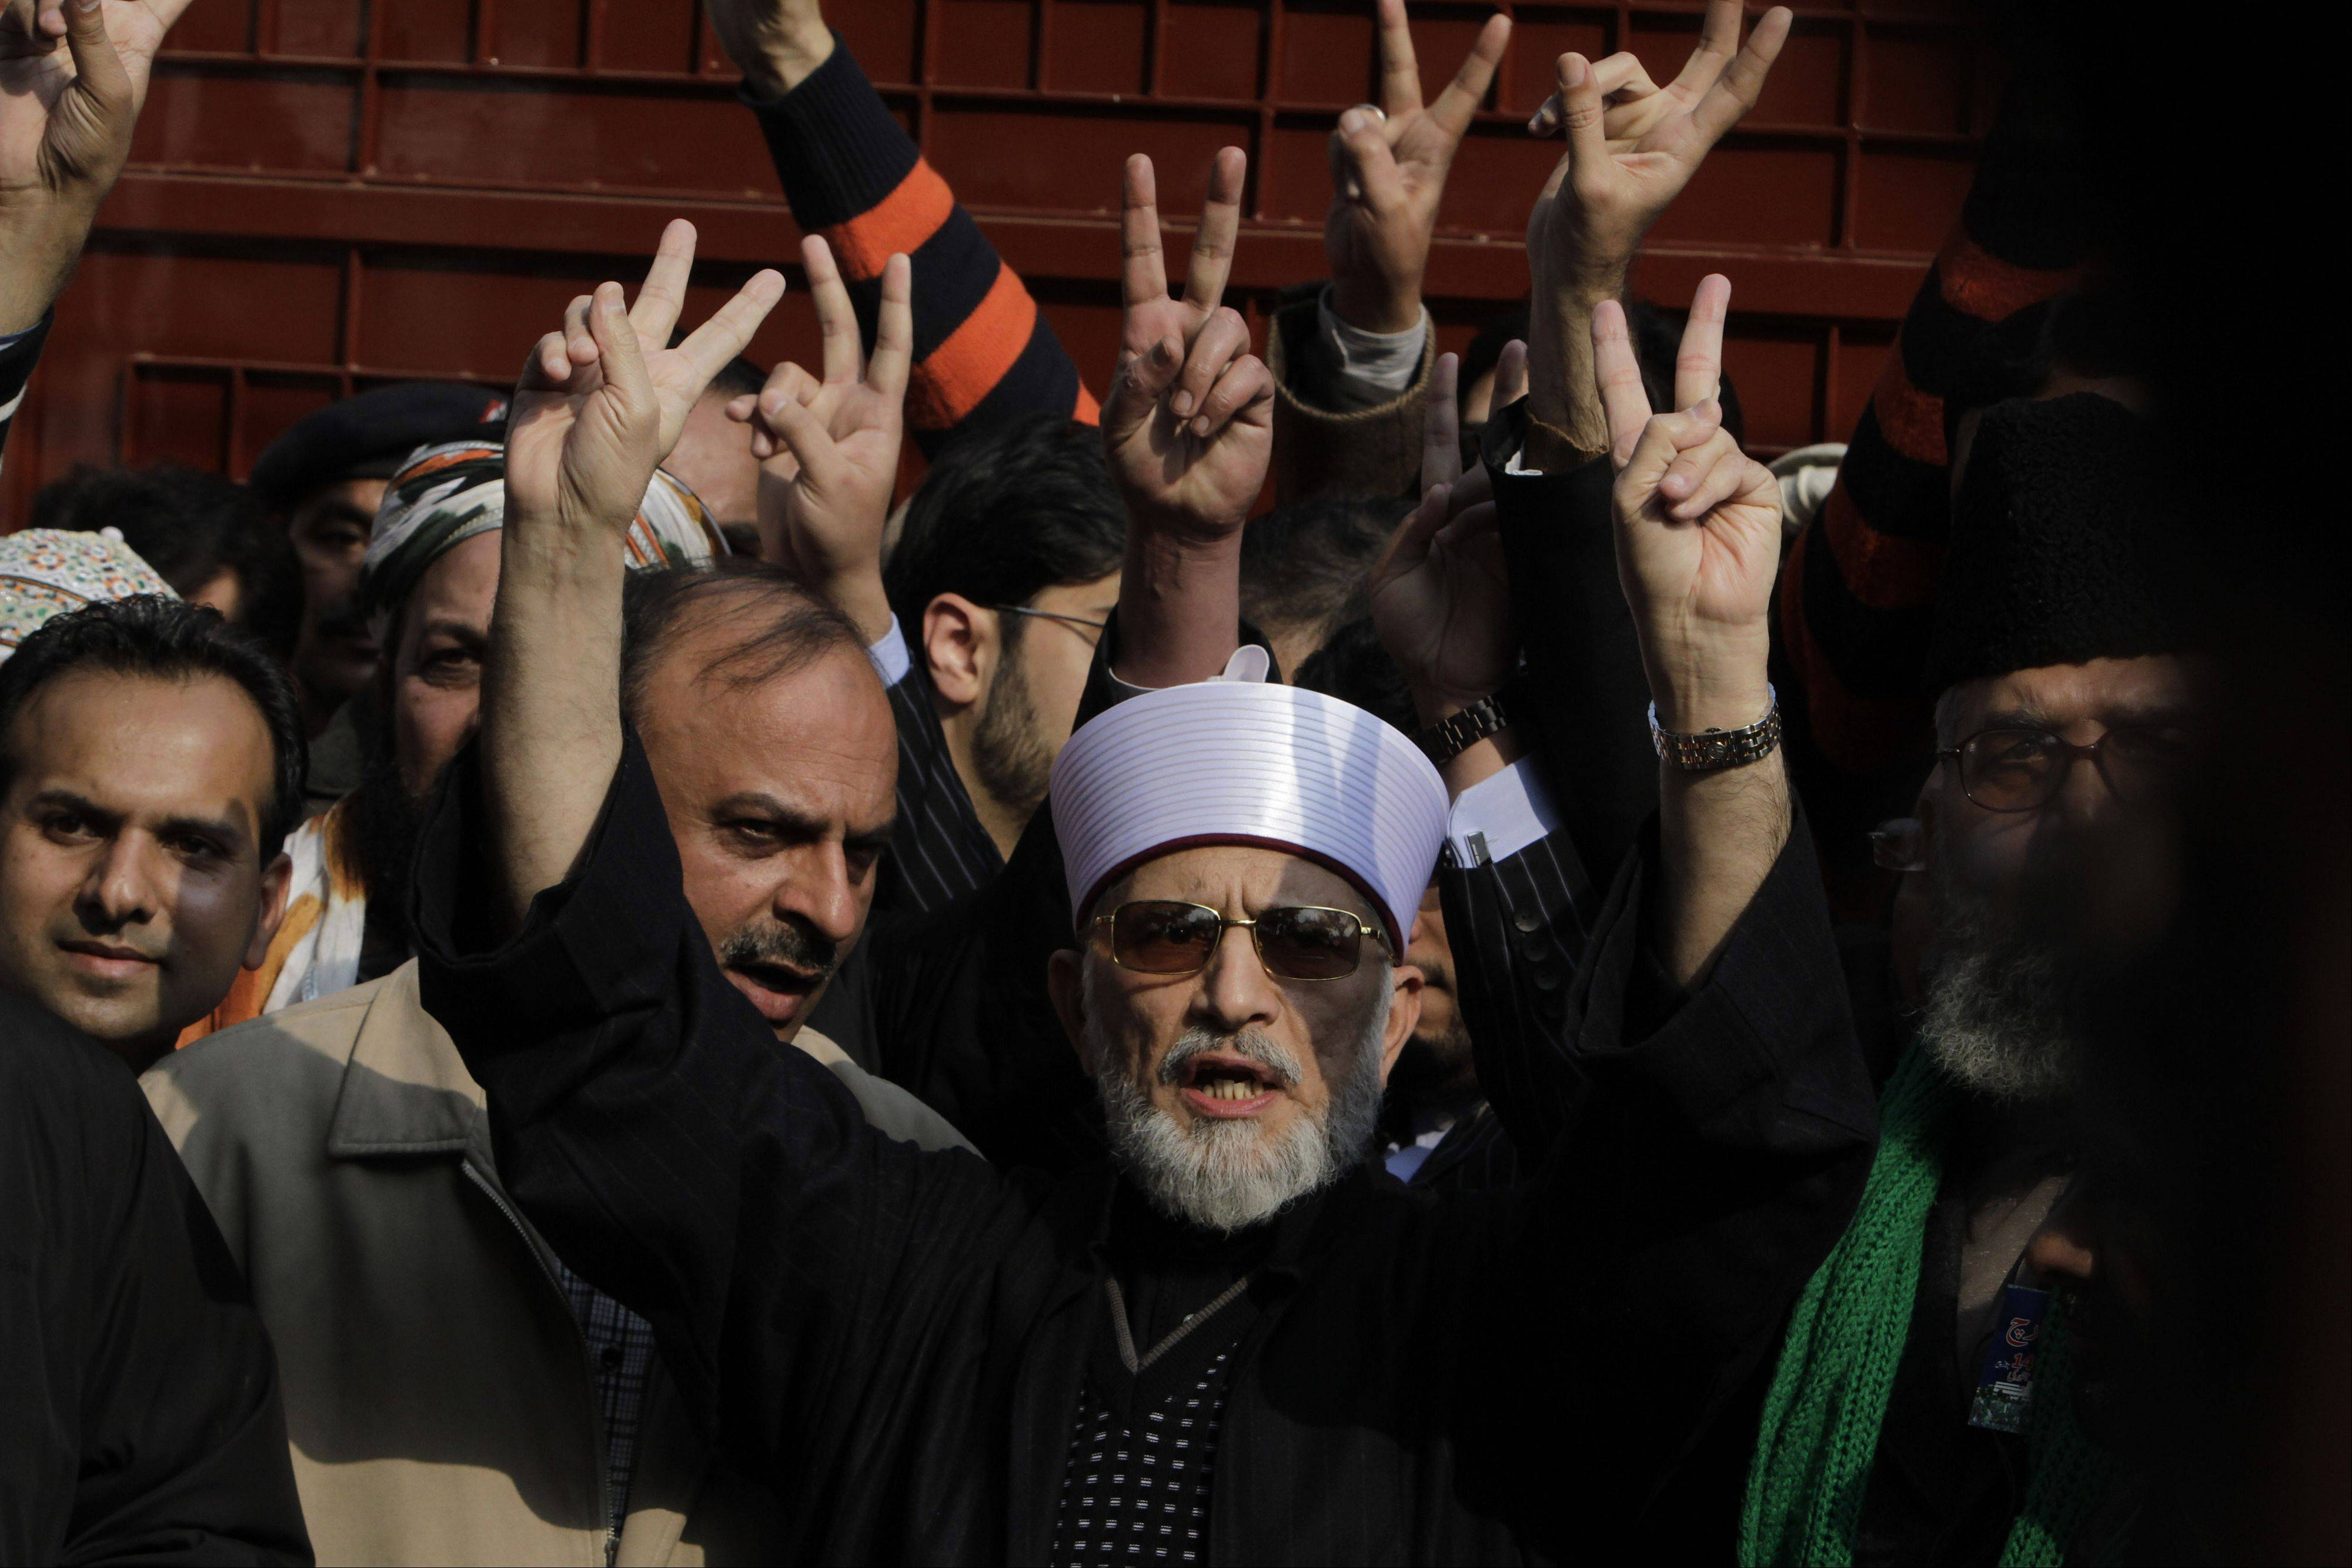 Pakistani Sunni Muslim cleric Tahir-ul-Qadri, 61, center, leaves Lahore to lead an anti-government march to the capital Islamabad, Pakistan, Sunday. After years in Canada, Qadri returned to Pakistan last month and gave a speech demanding that sweeping election reforms be implemented before elections this spring.